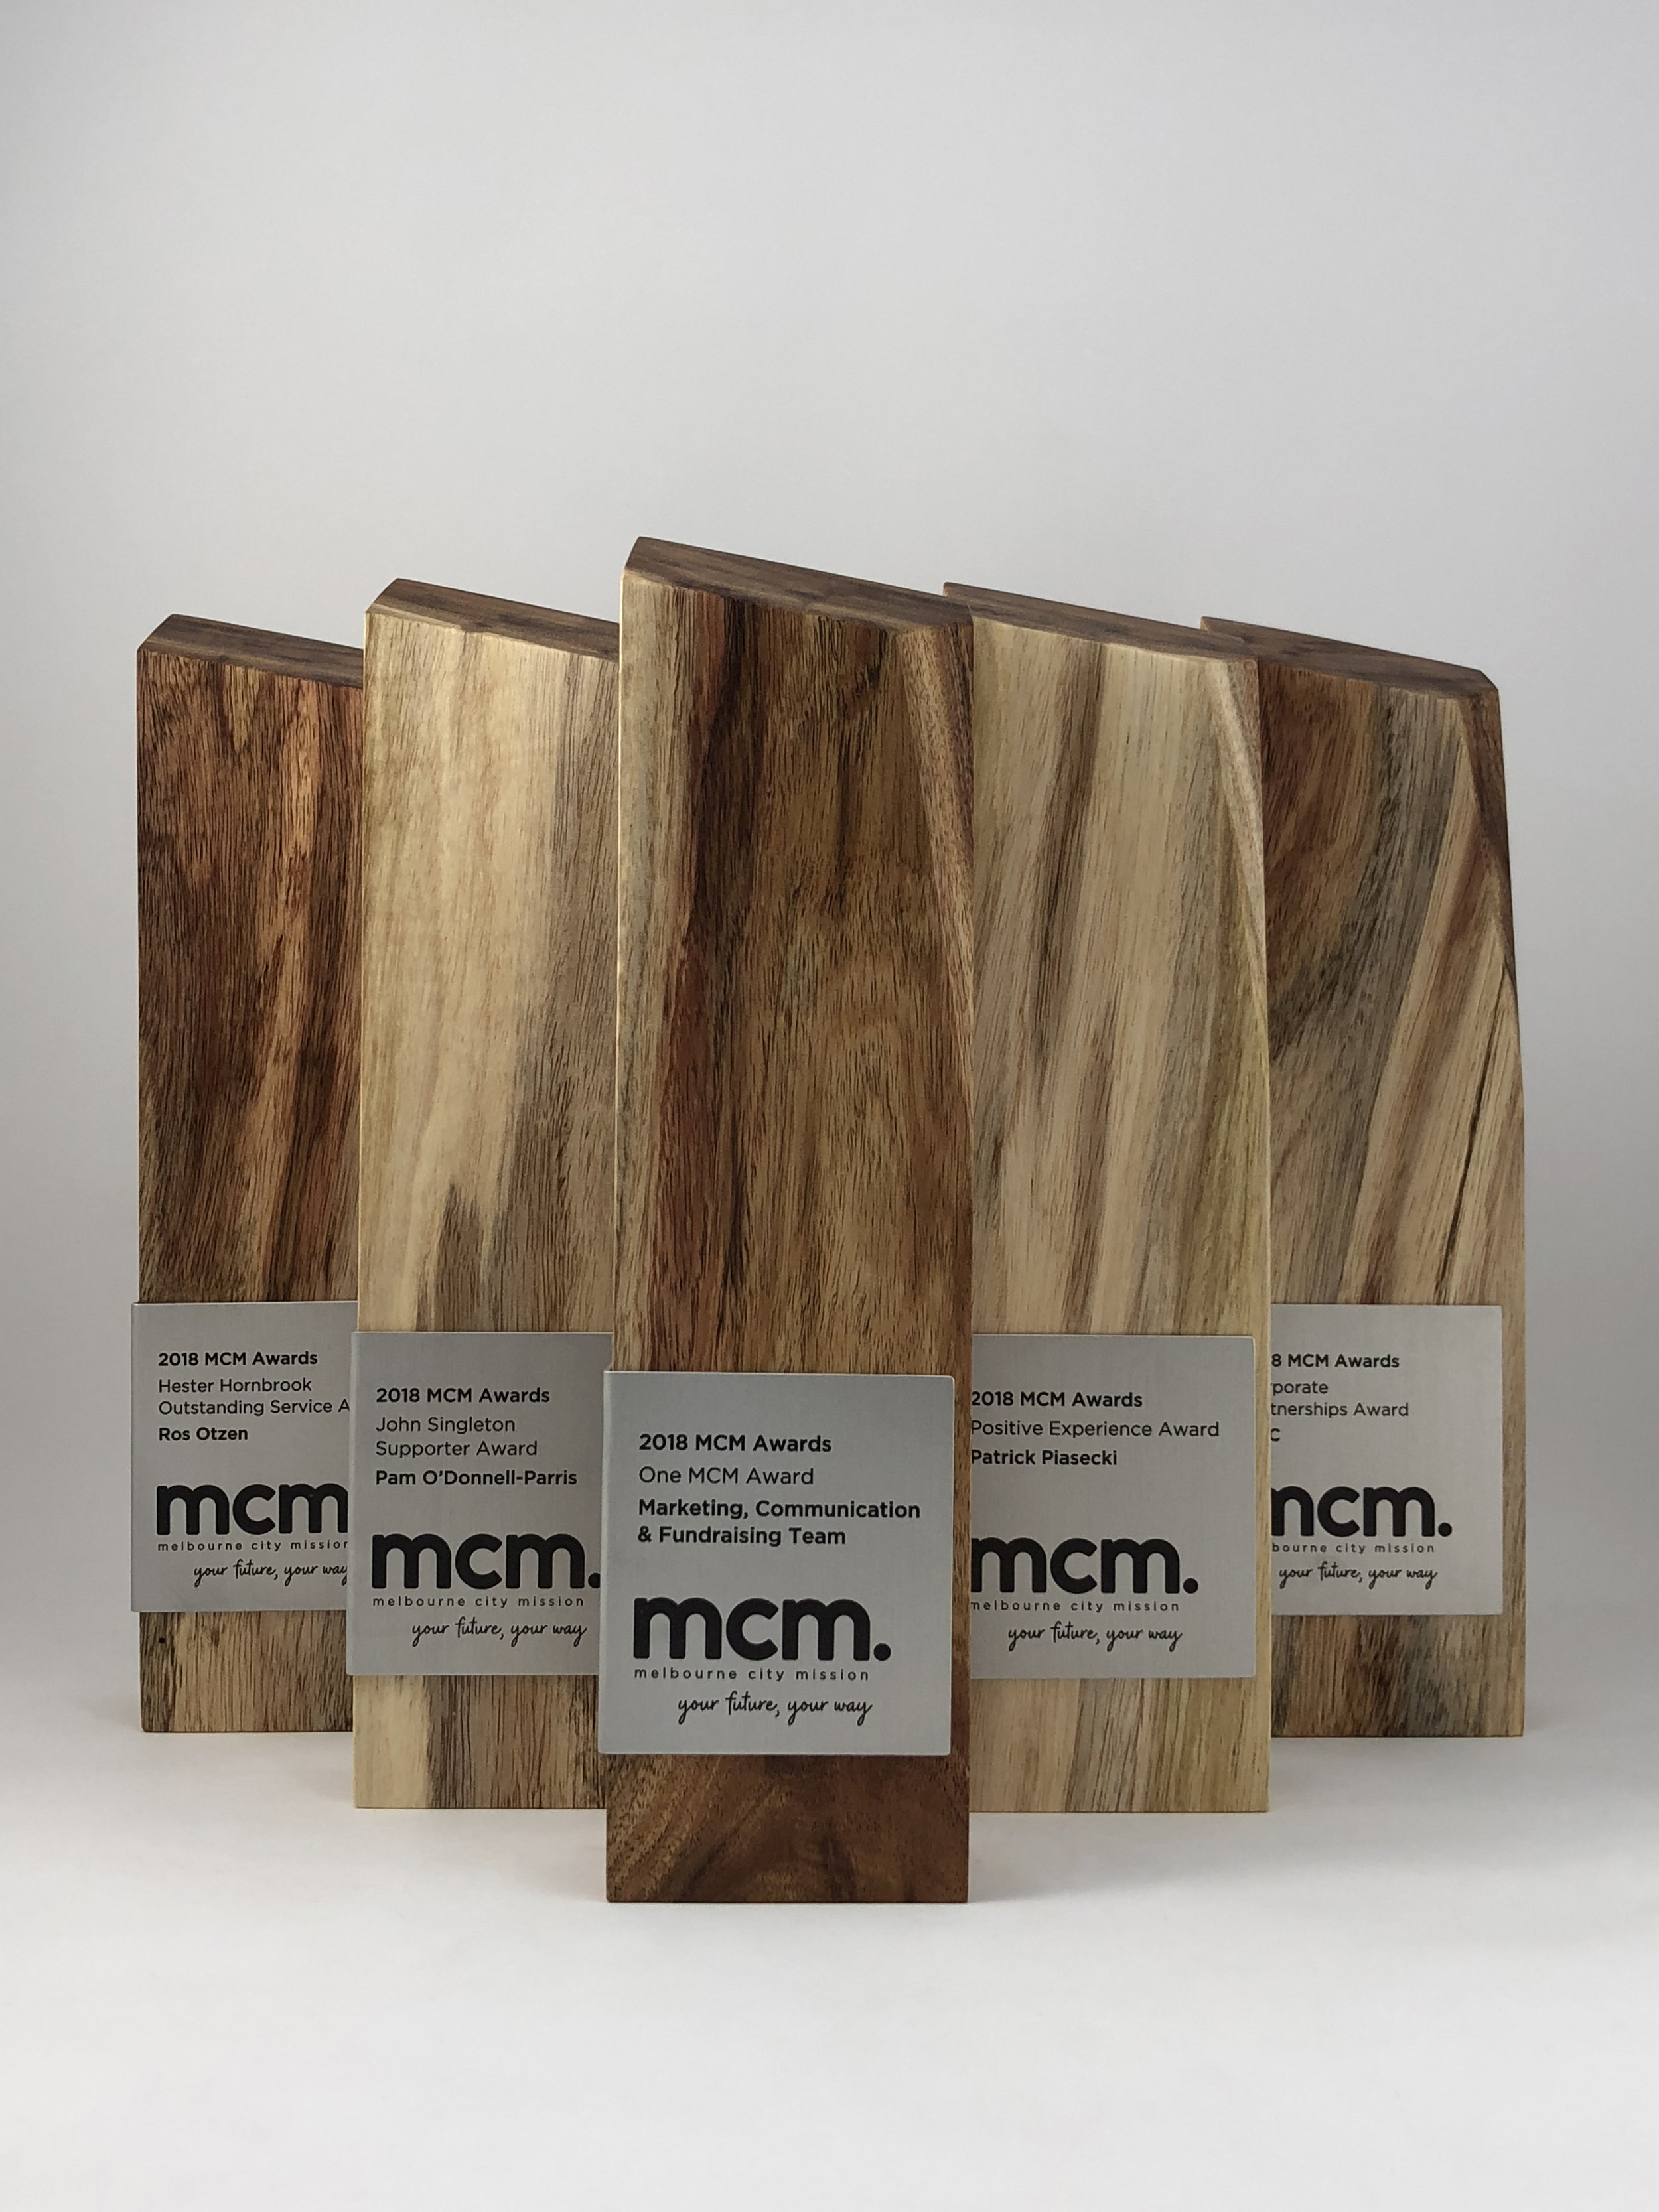 mcm-awards-reclaimed-eco-timber-chamfer-metal-trophy-07.jpg